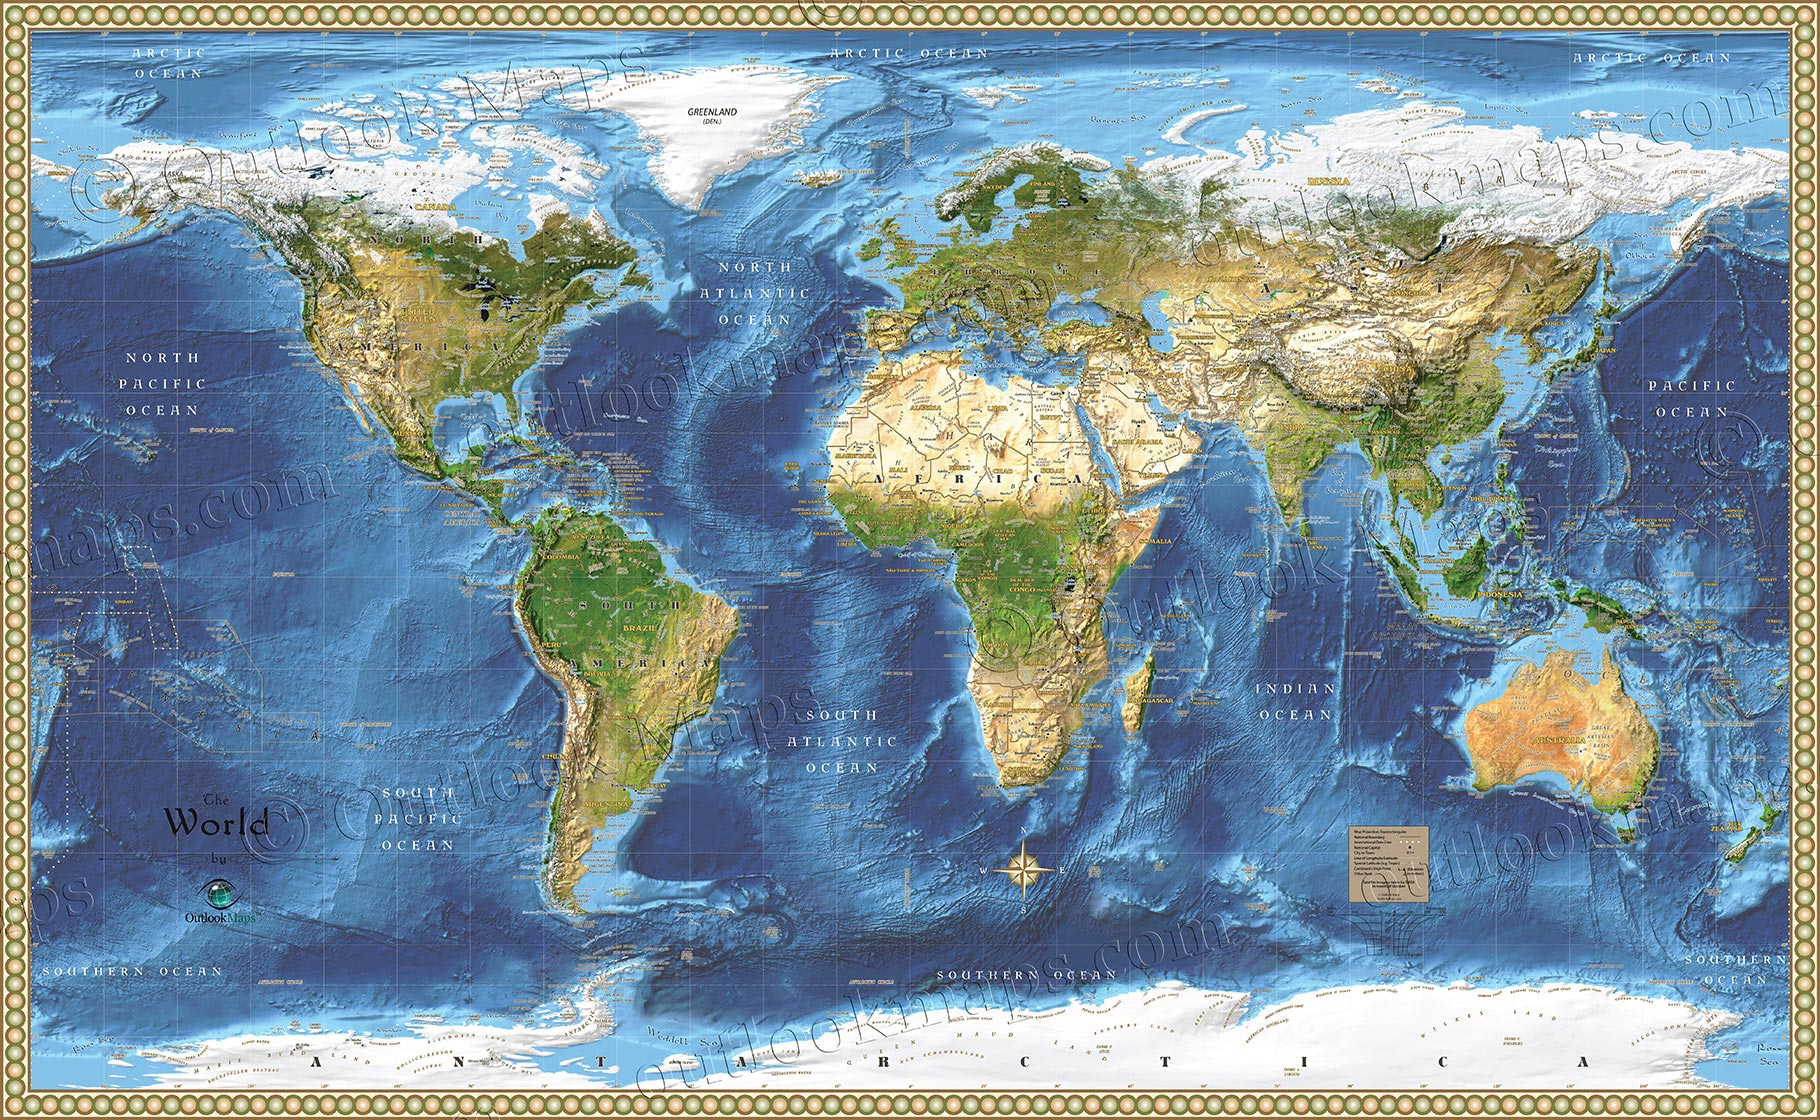 Map Of The World Satellite.World Satellite Wall Map Detailed Map With Labels